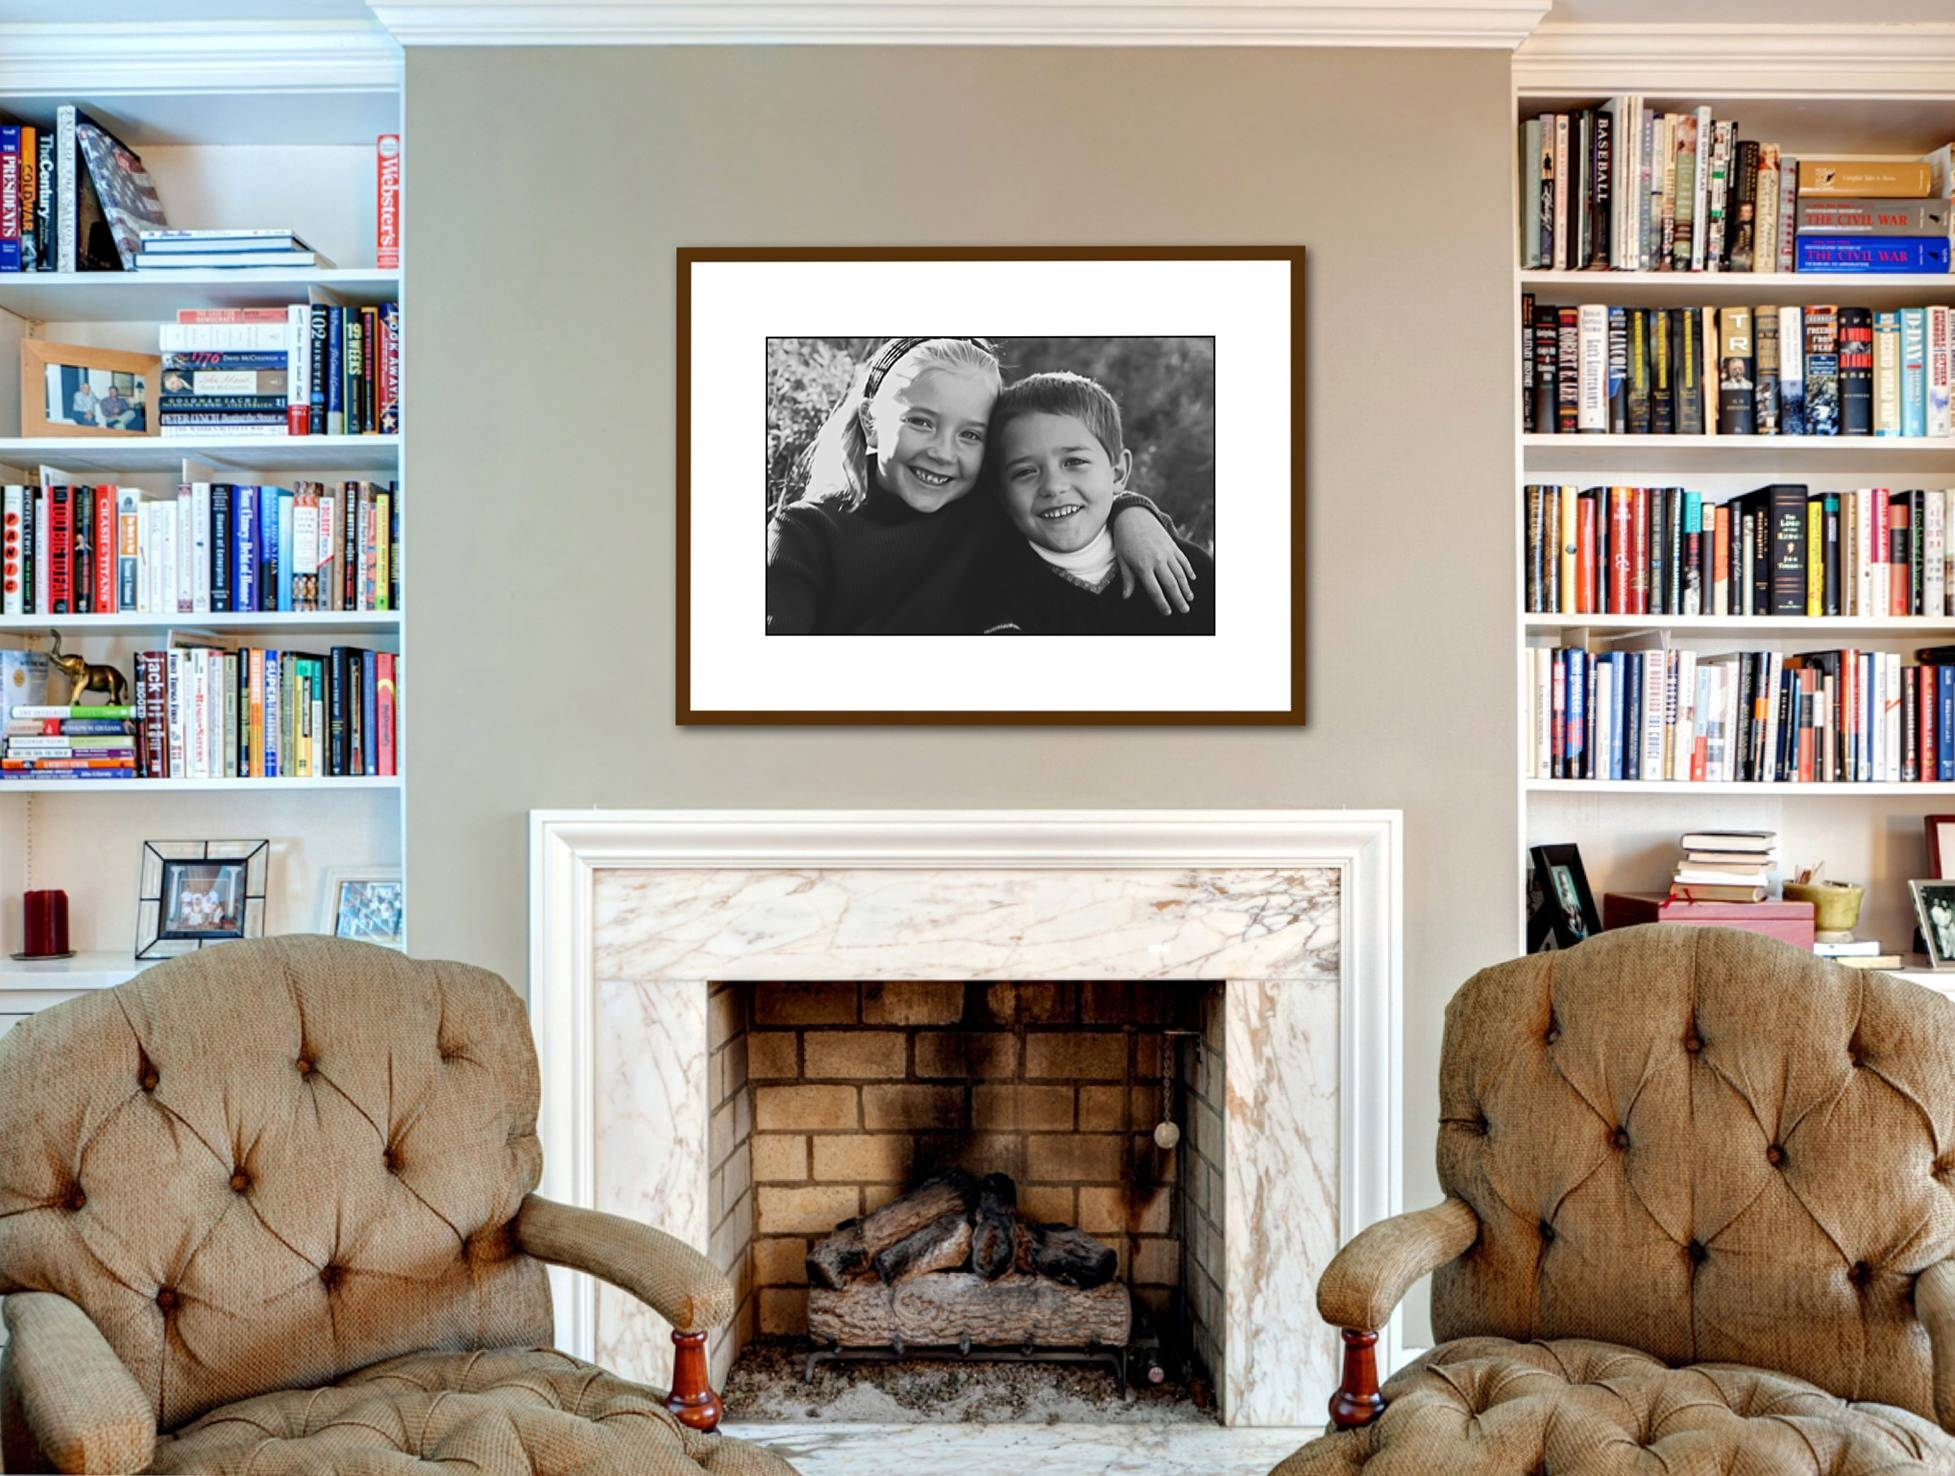 Black And White Photography Wall Art Ideas – In Recent Photography Wall Art (View 21 of 25)